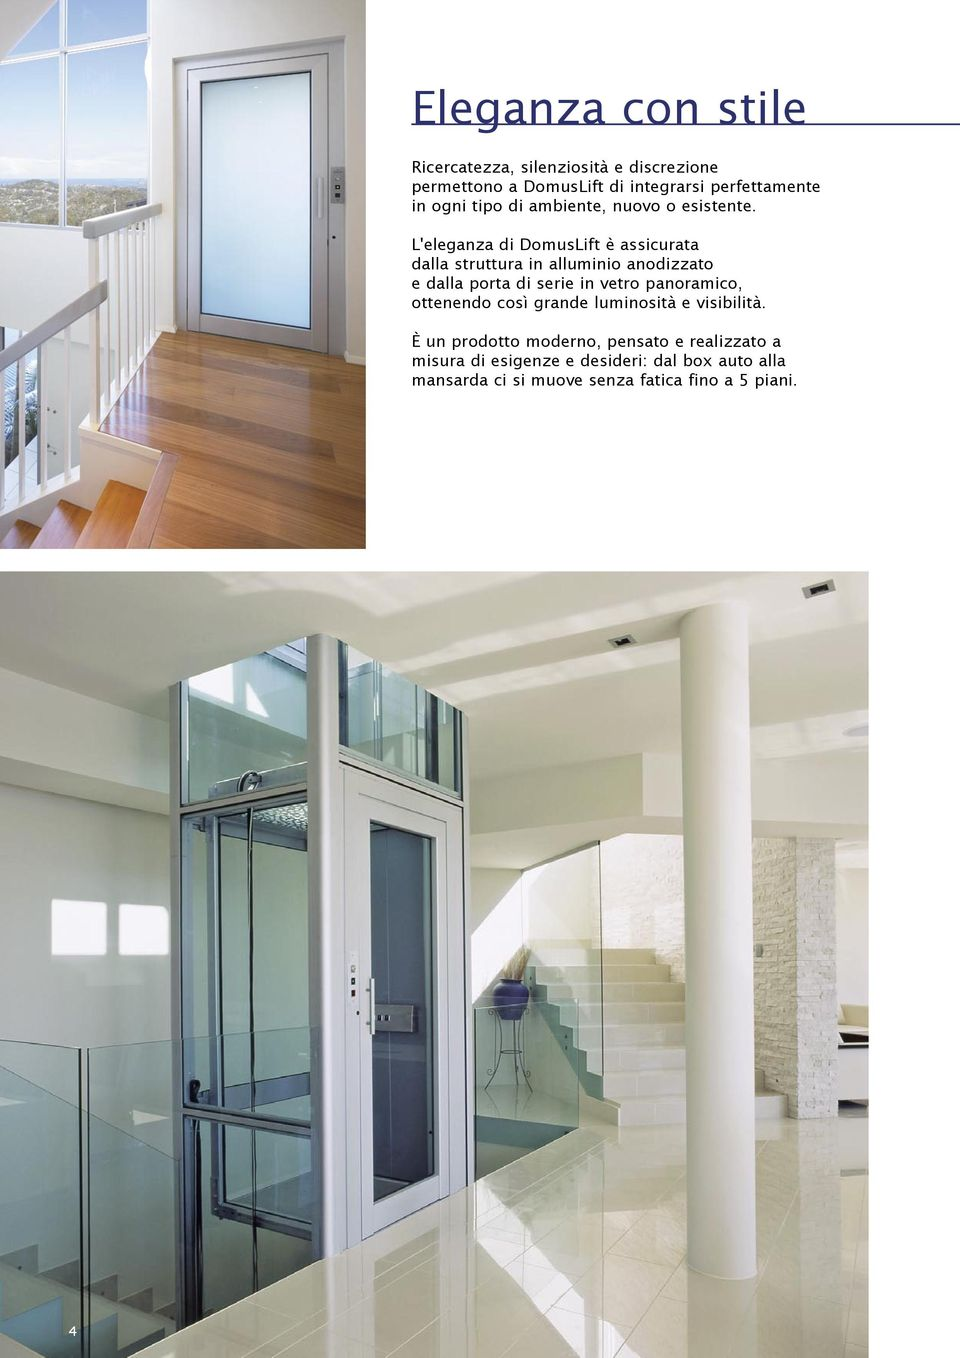 Domuslift domuslift l 39 elevatore personale pdf for Piani di casa in stile ranch con 3 box auto